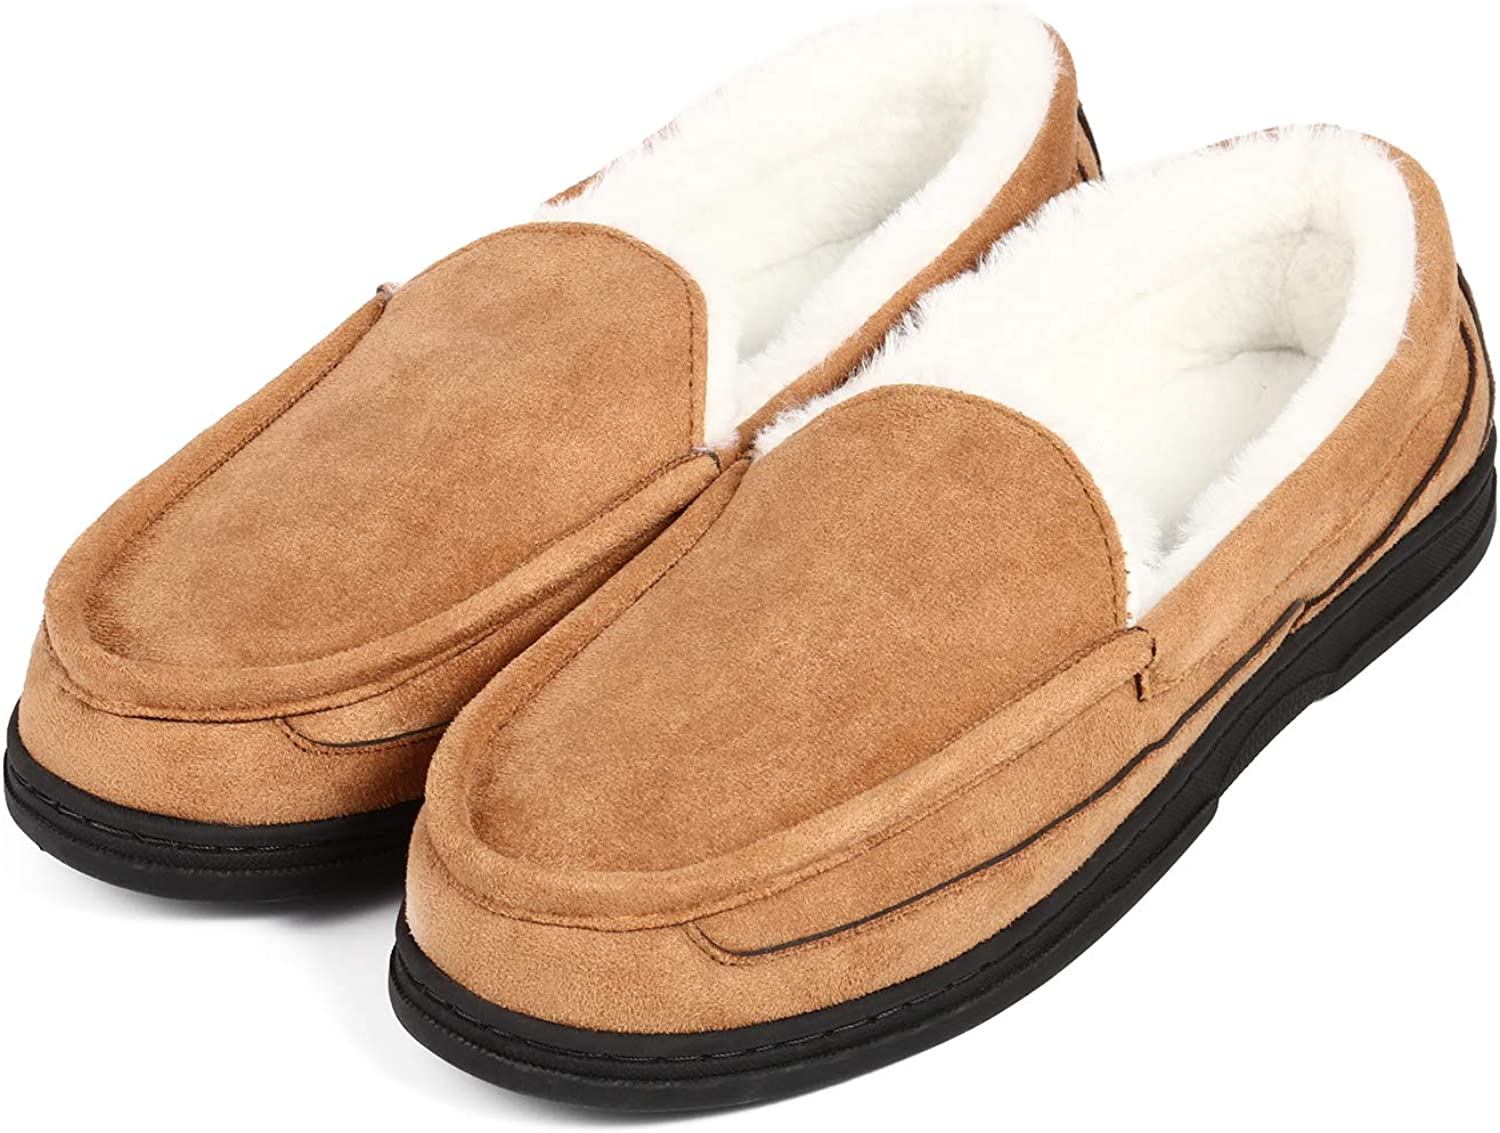 Men's Moccasin Slippers House Shoes Comfort Warm Our shop OFFers the Ranking TOP11 best service Memory